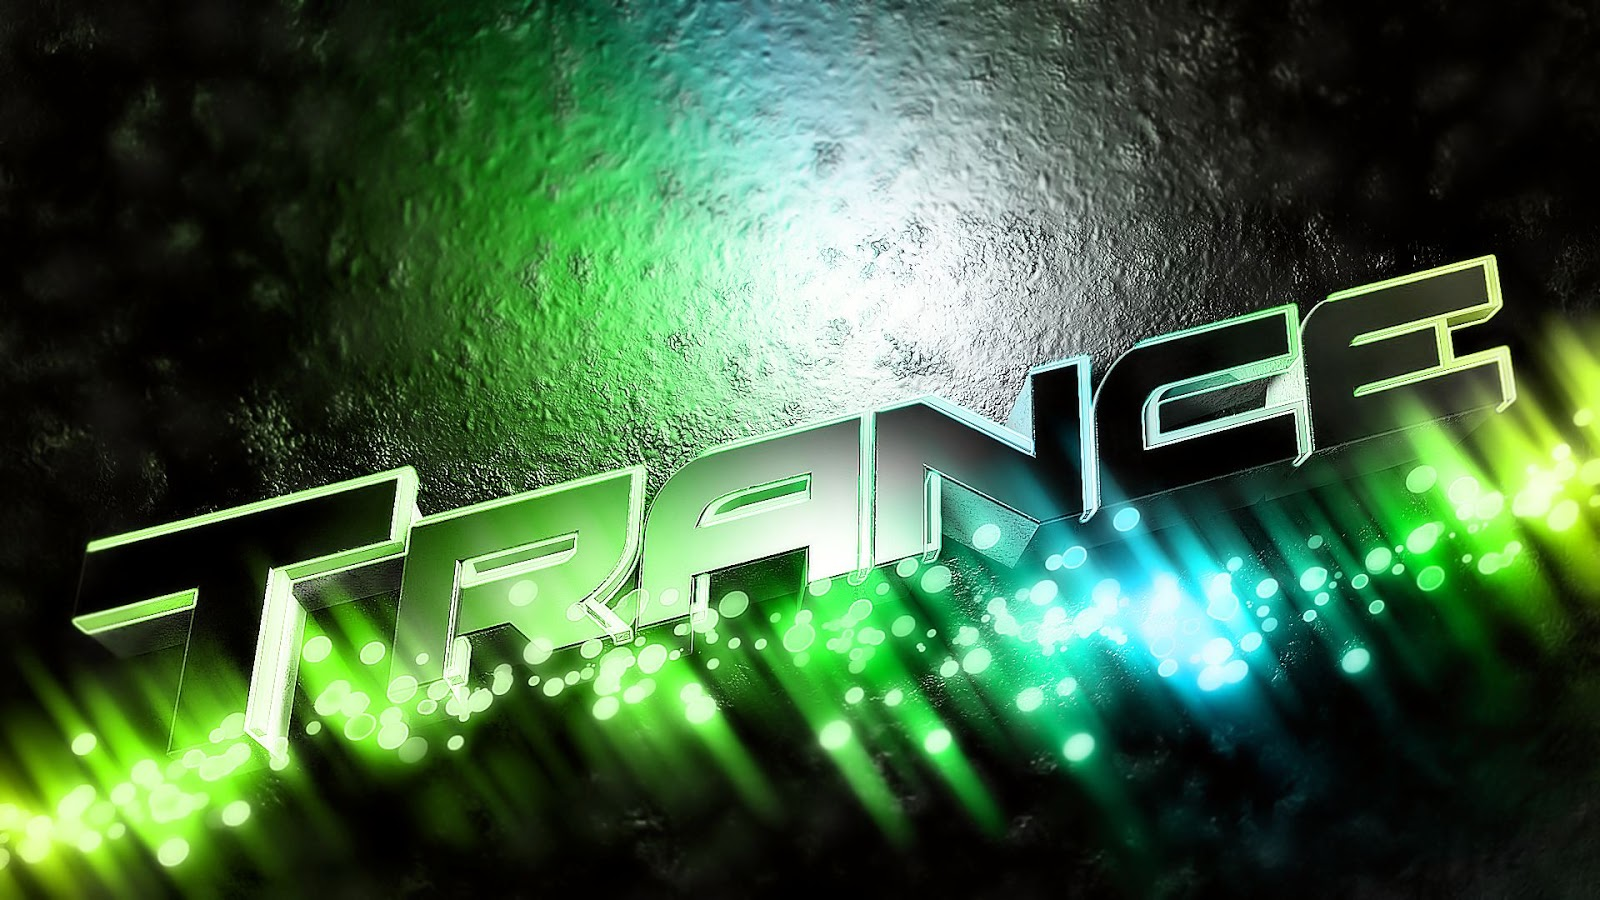 wallpapers trance wallpaper - photo #17